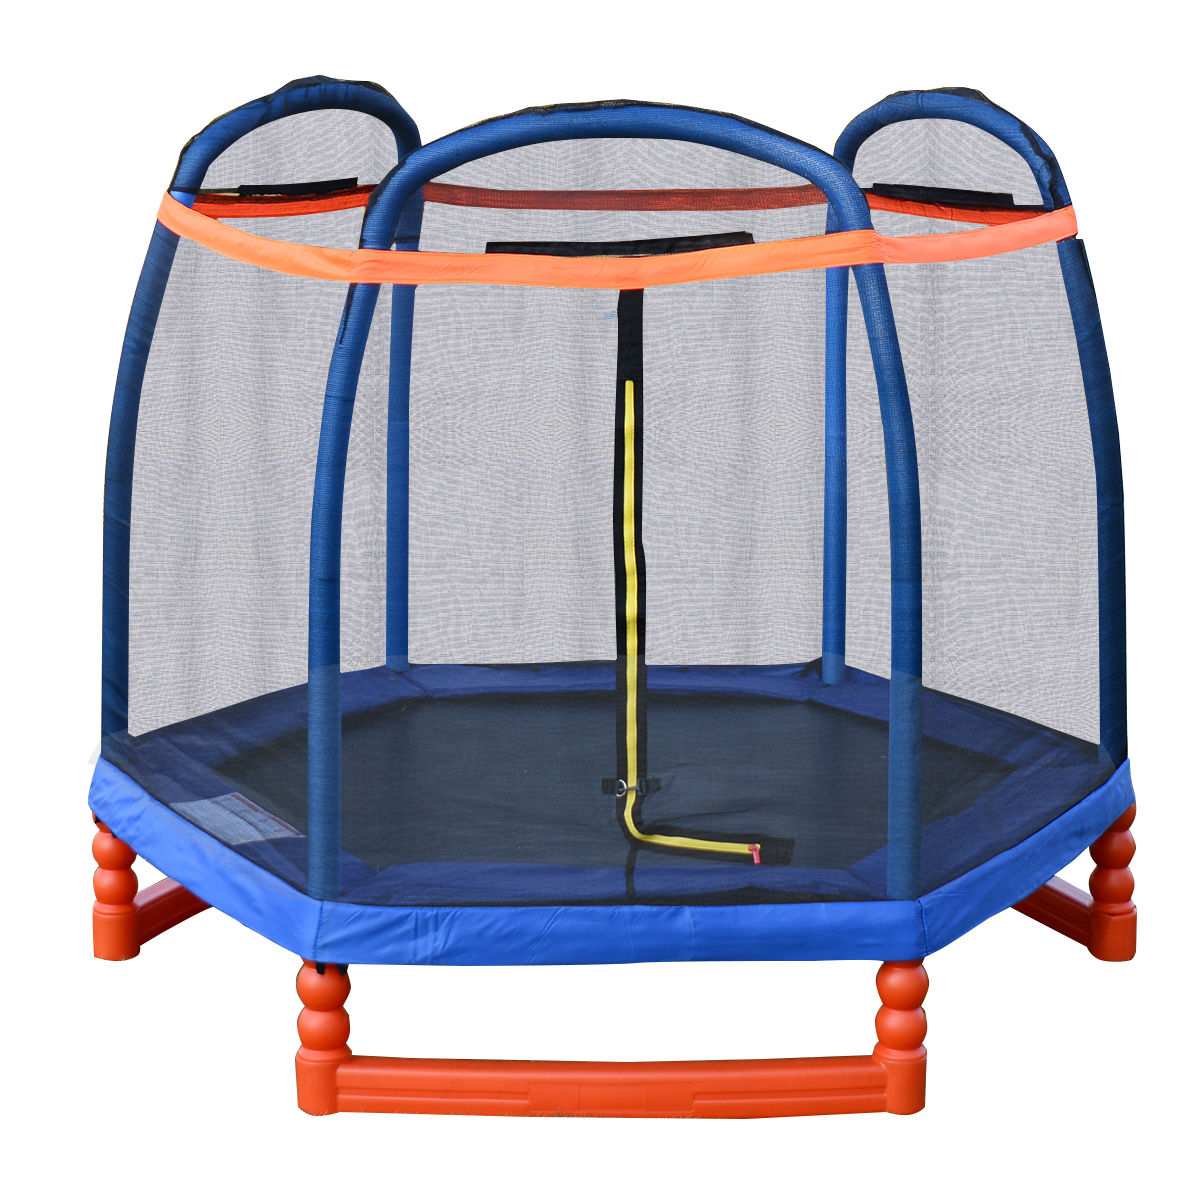 Costway 7ft Trampoline Combo W Safety Enclosure Net